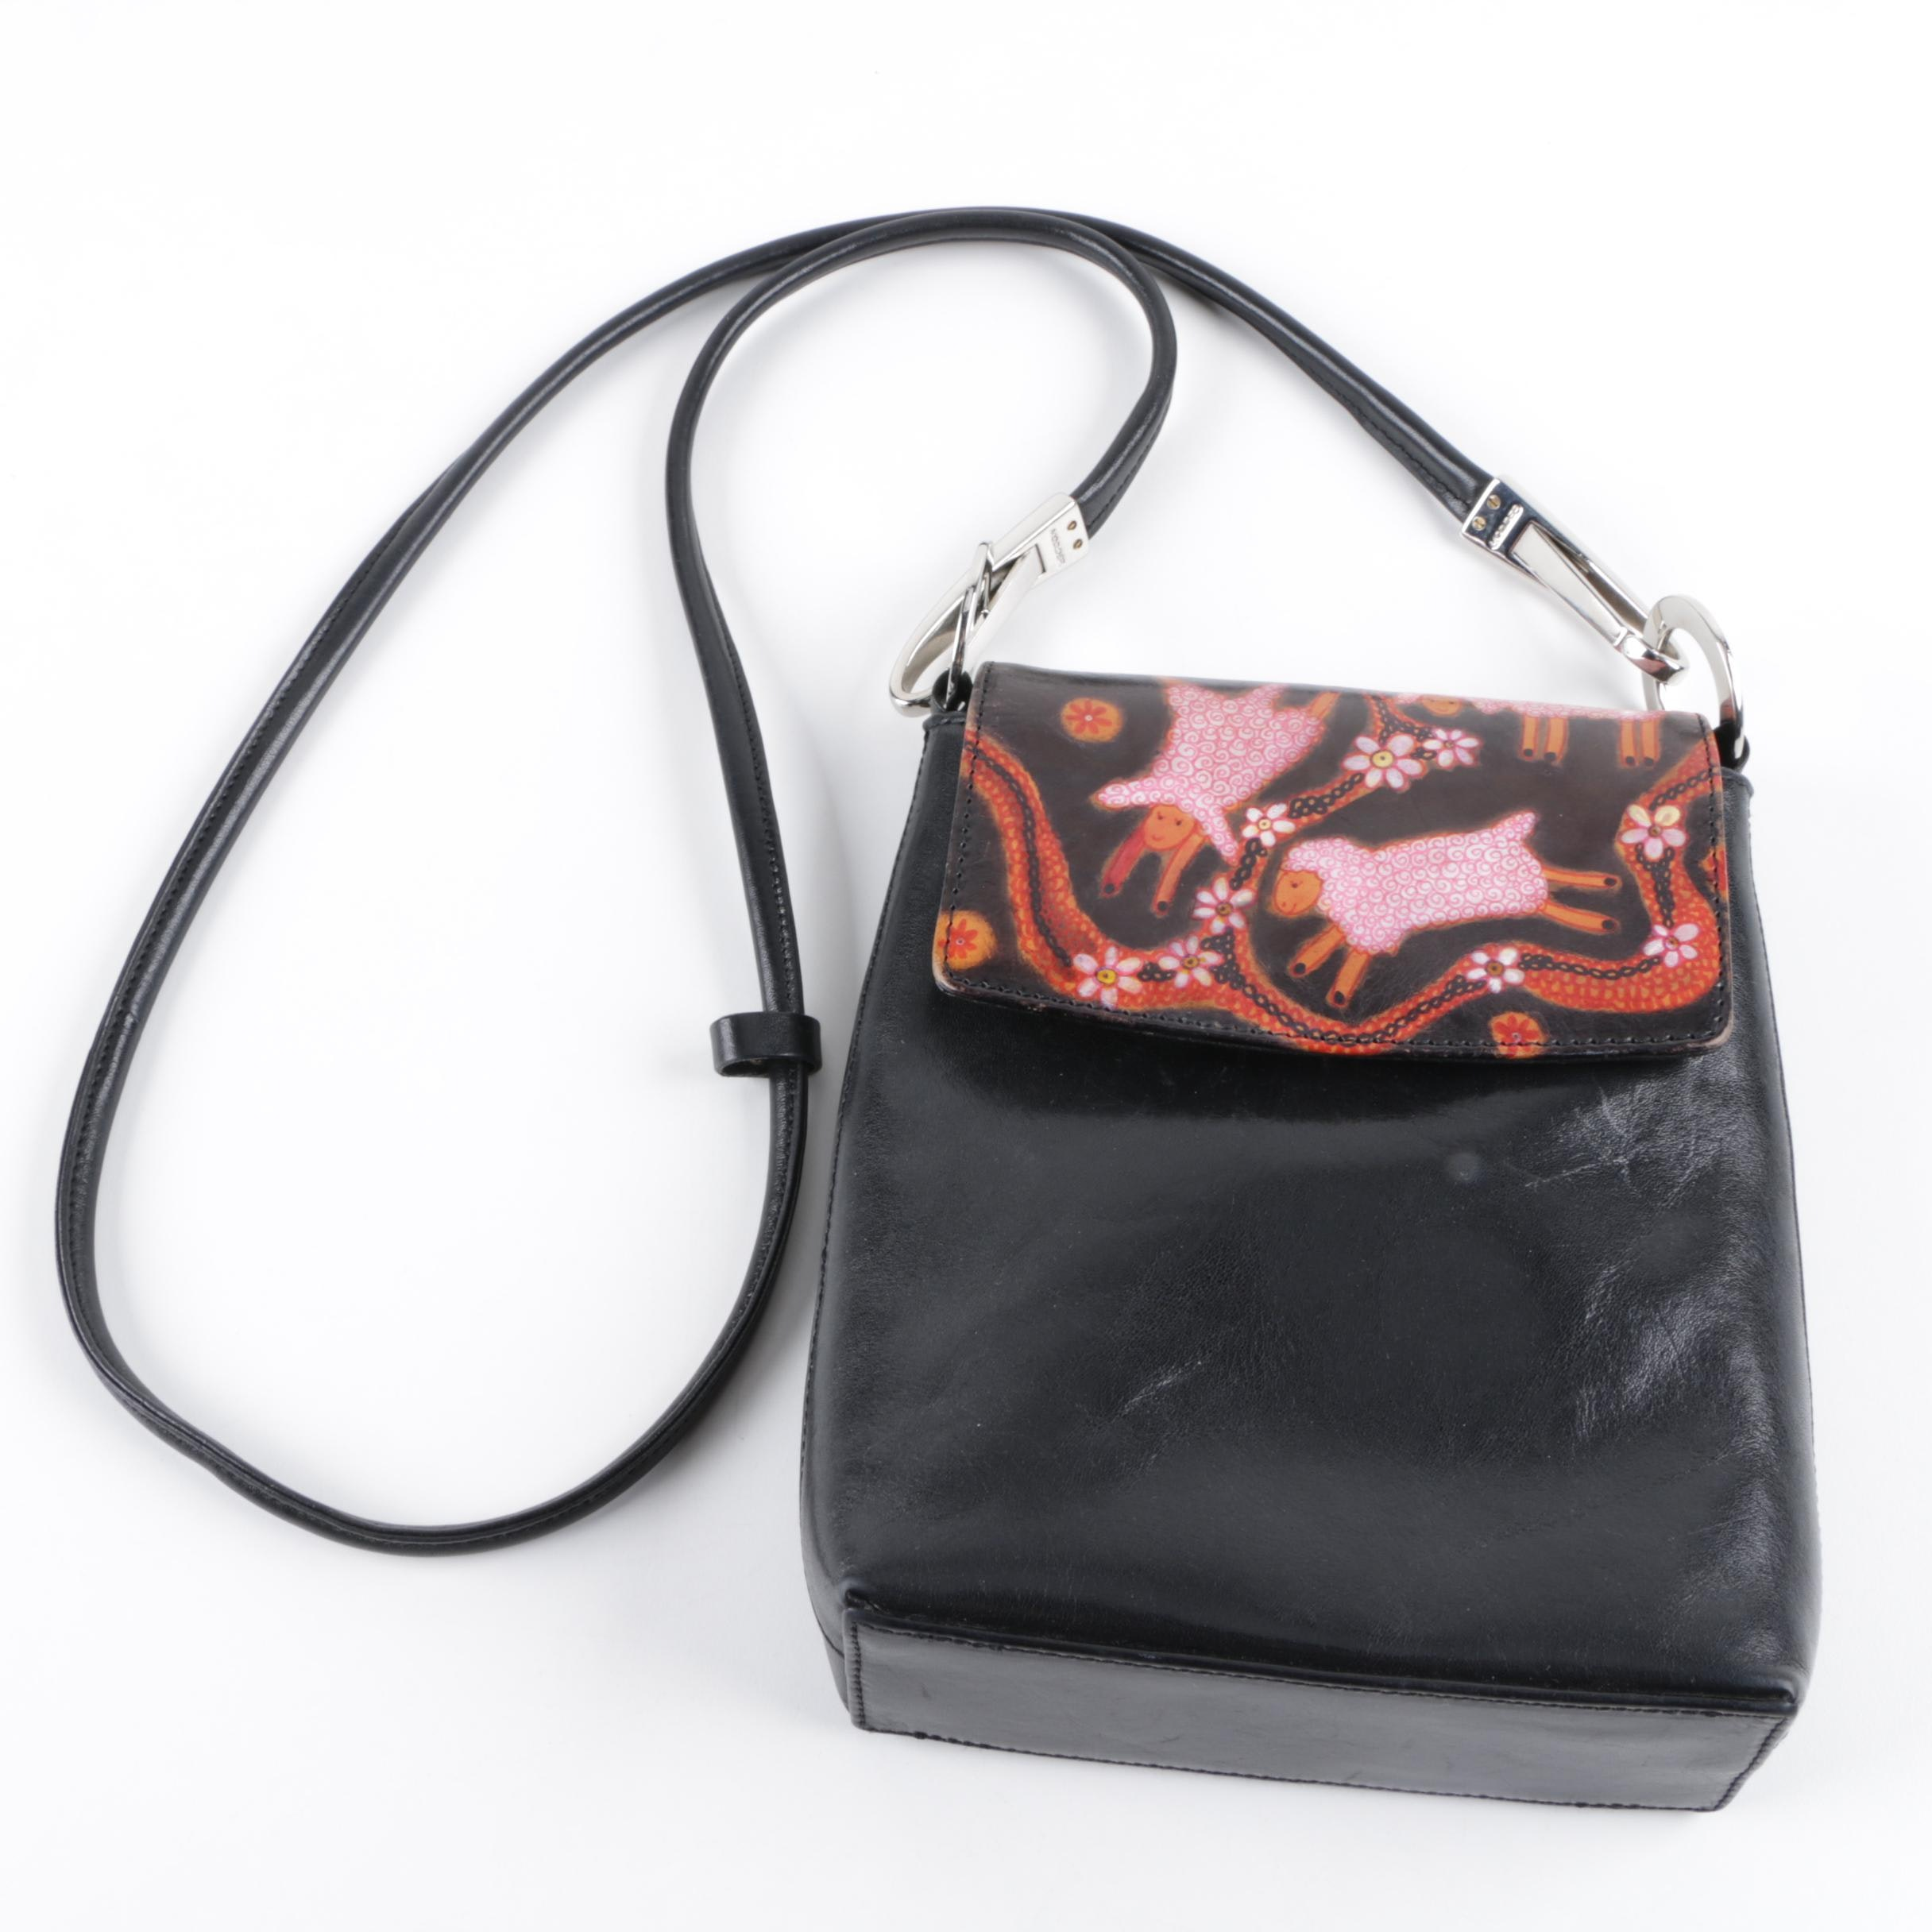 Bambas Leather Crossbody Bag with Sheep Motif